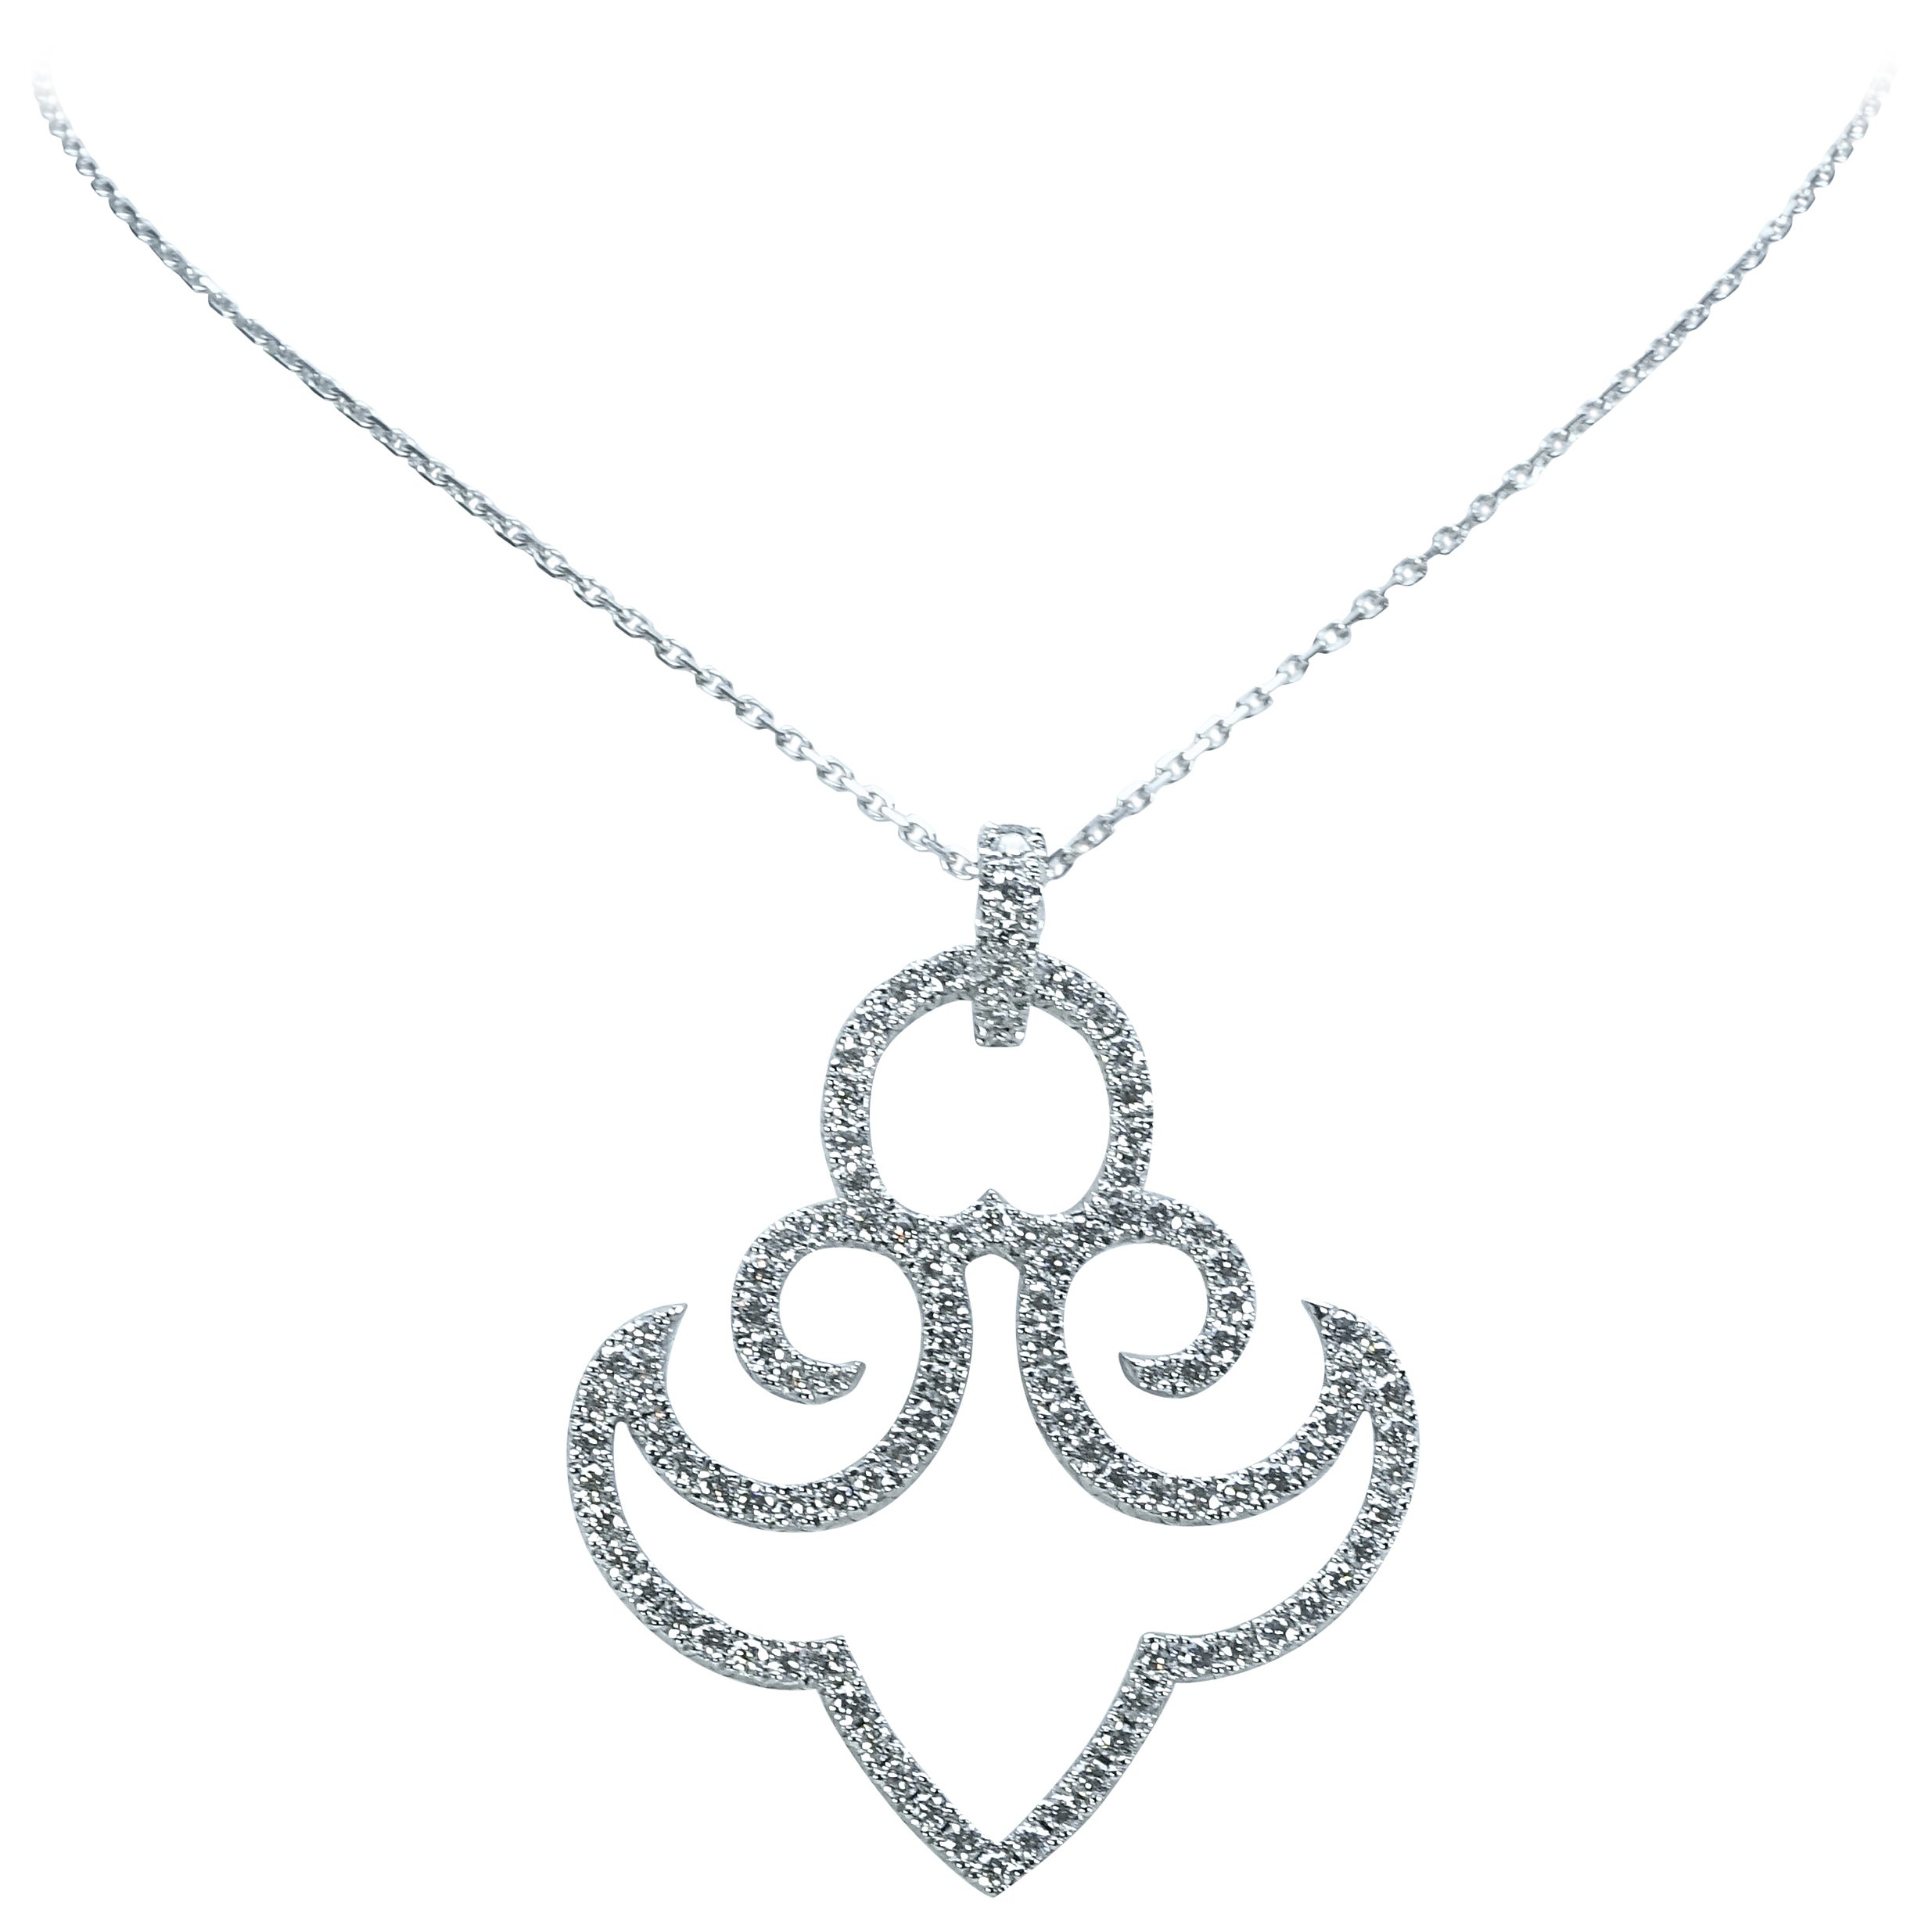 18K White Gold Chain Necklace With Diamond and 18K White Gold Anchor Pendant